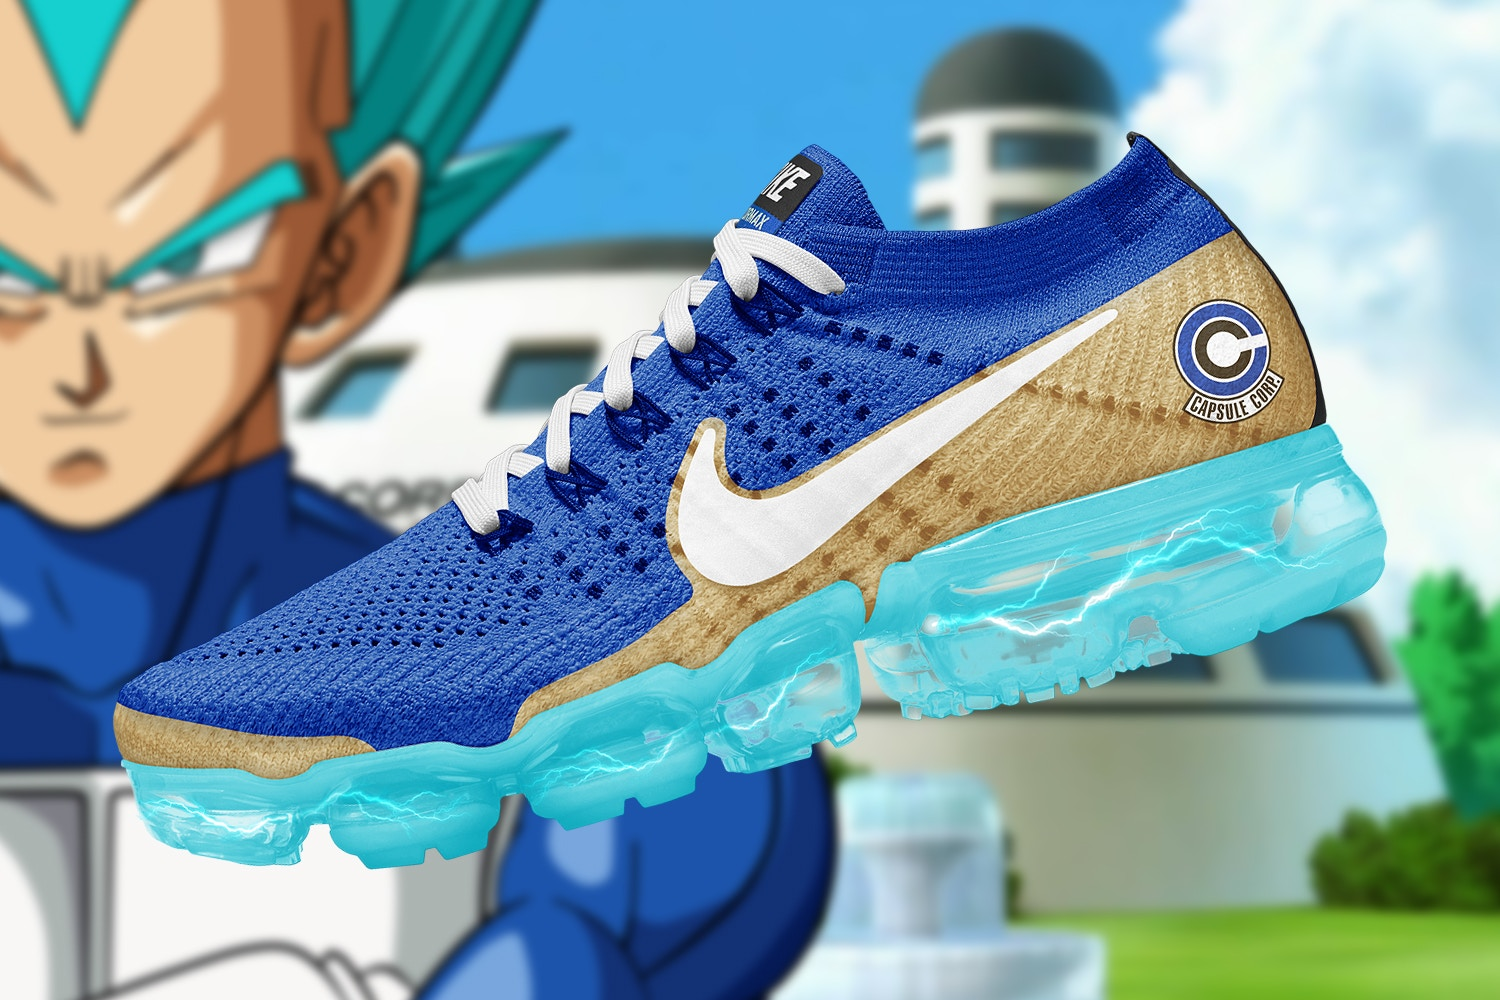 Fuerza motriz Inconsciente prima  Checkout These Ultimate 'Dragon Ball Super' x Nike Air VaporMax  Collaboration [SneakPeak] | Hype Magazine